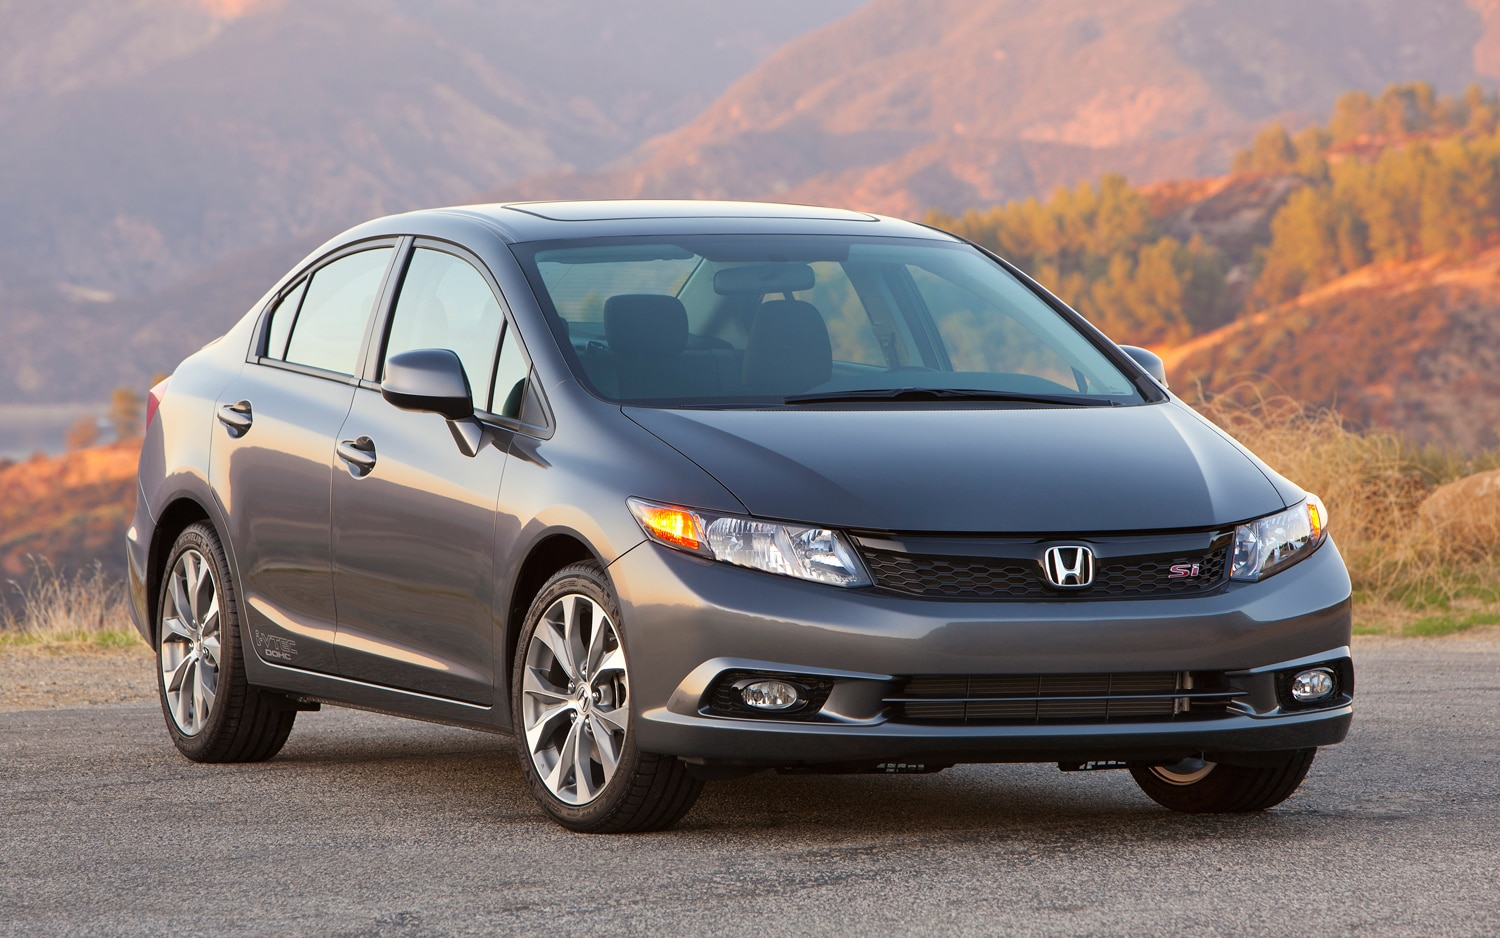 honda civic still top compact in july corolla and elantra get second and third. Black Bedroom Furniture Sets. Home Design Ideas